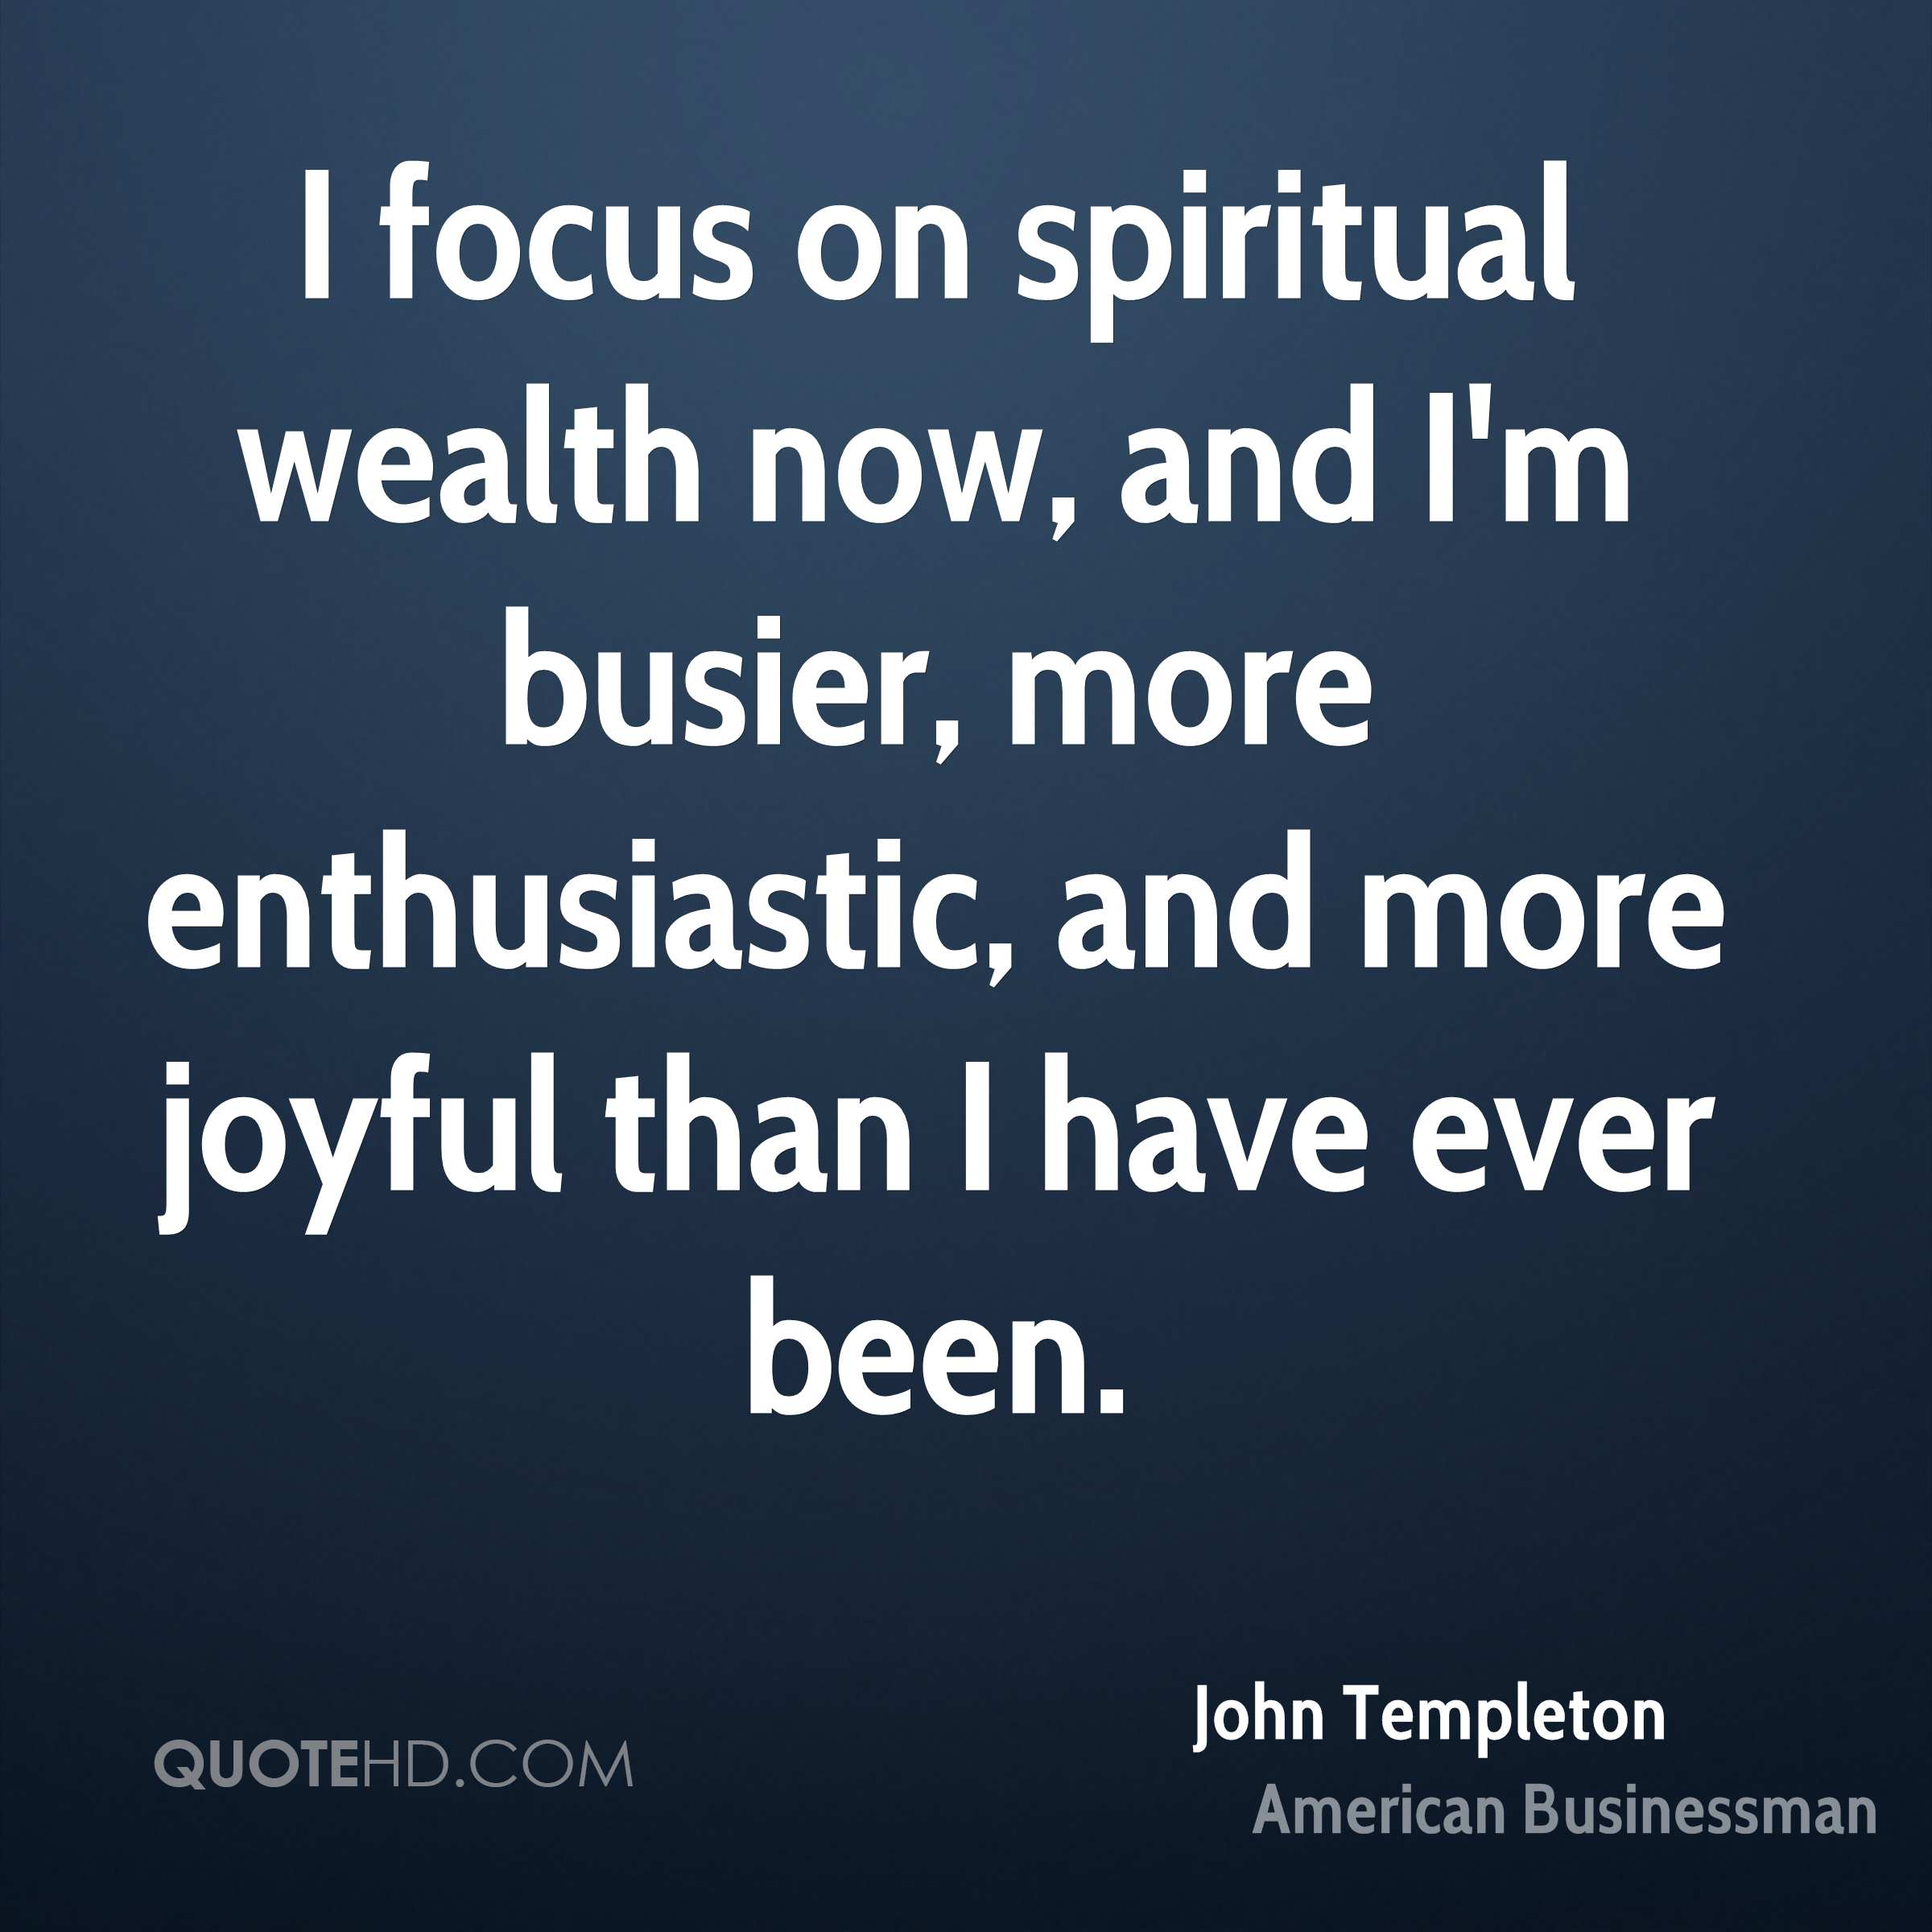 I focus on spiritual wealth now, and I'm busier, more enthusiastic, and more joyful than I have ever been.